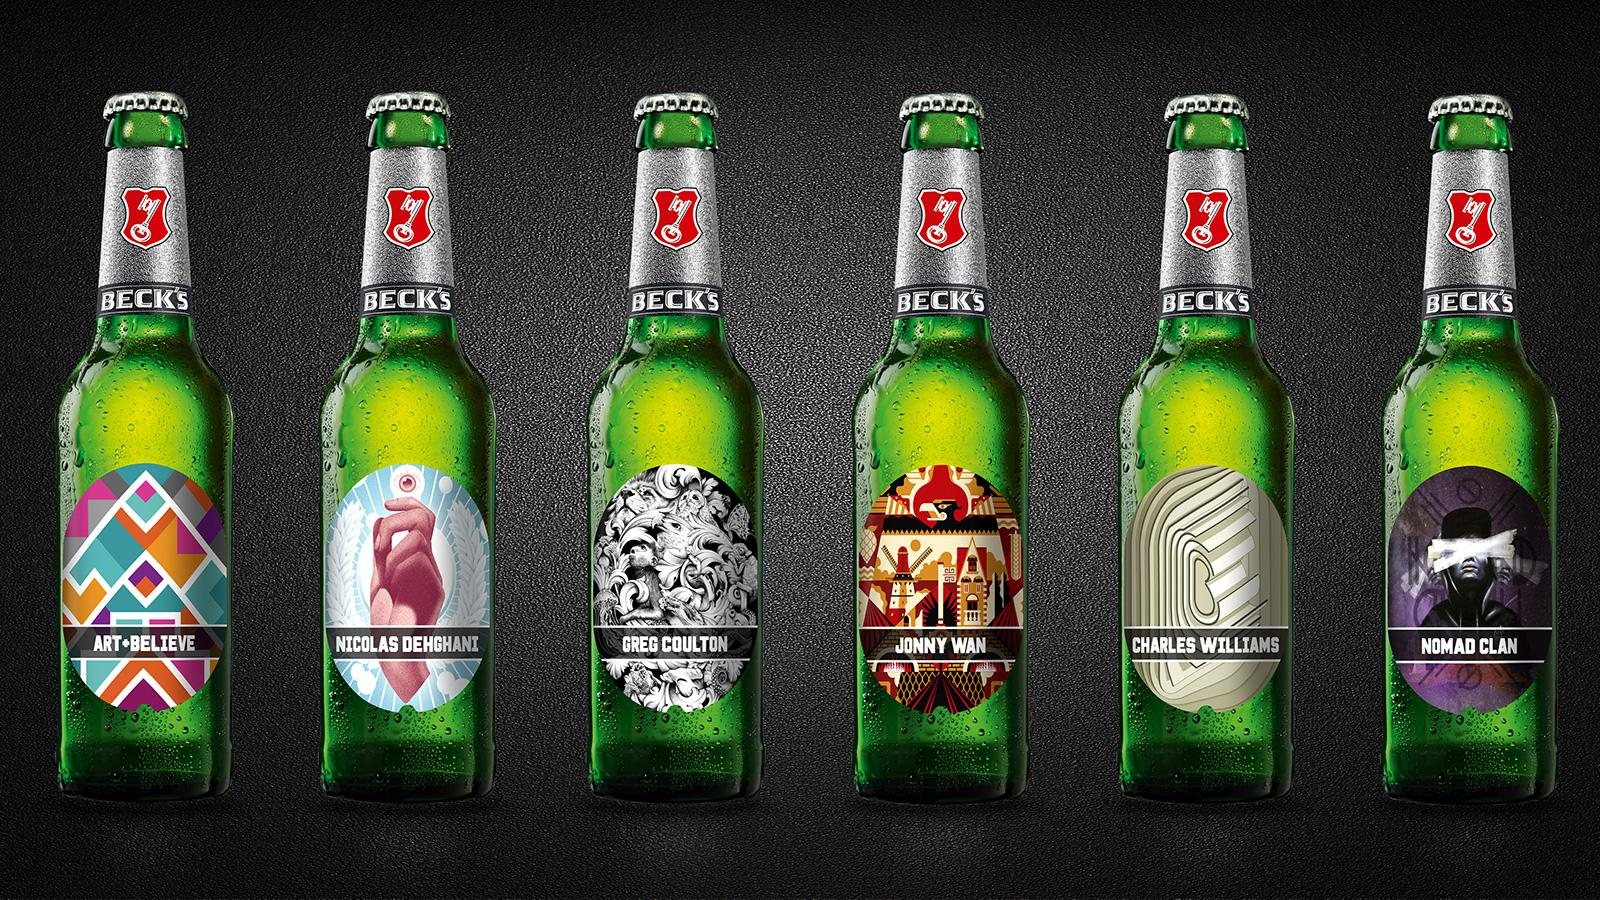 Artists Make Their Mark On Beck's With New Beer Label Designs photo